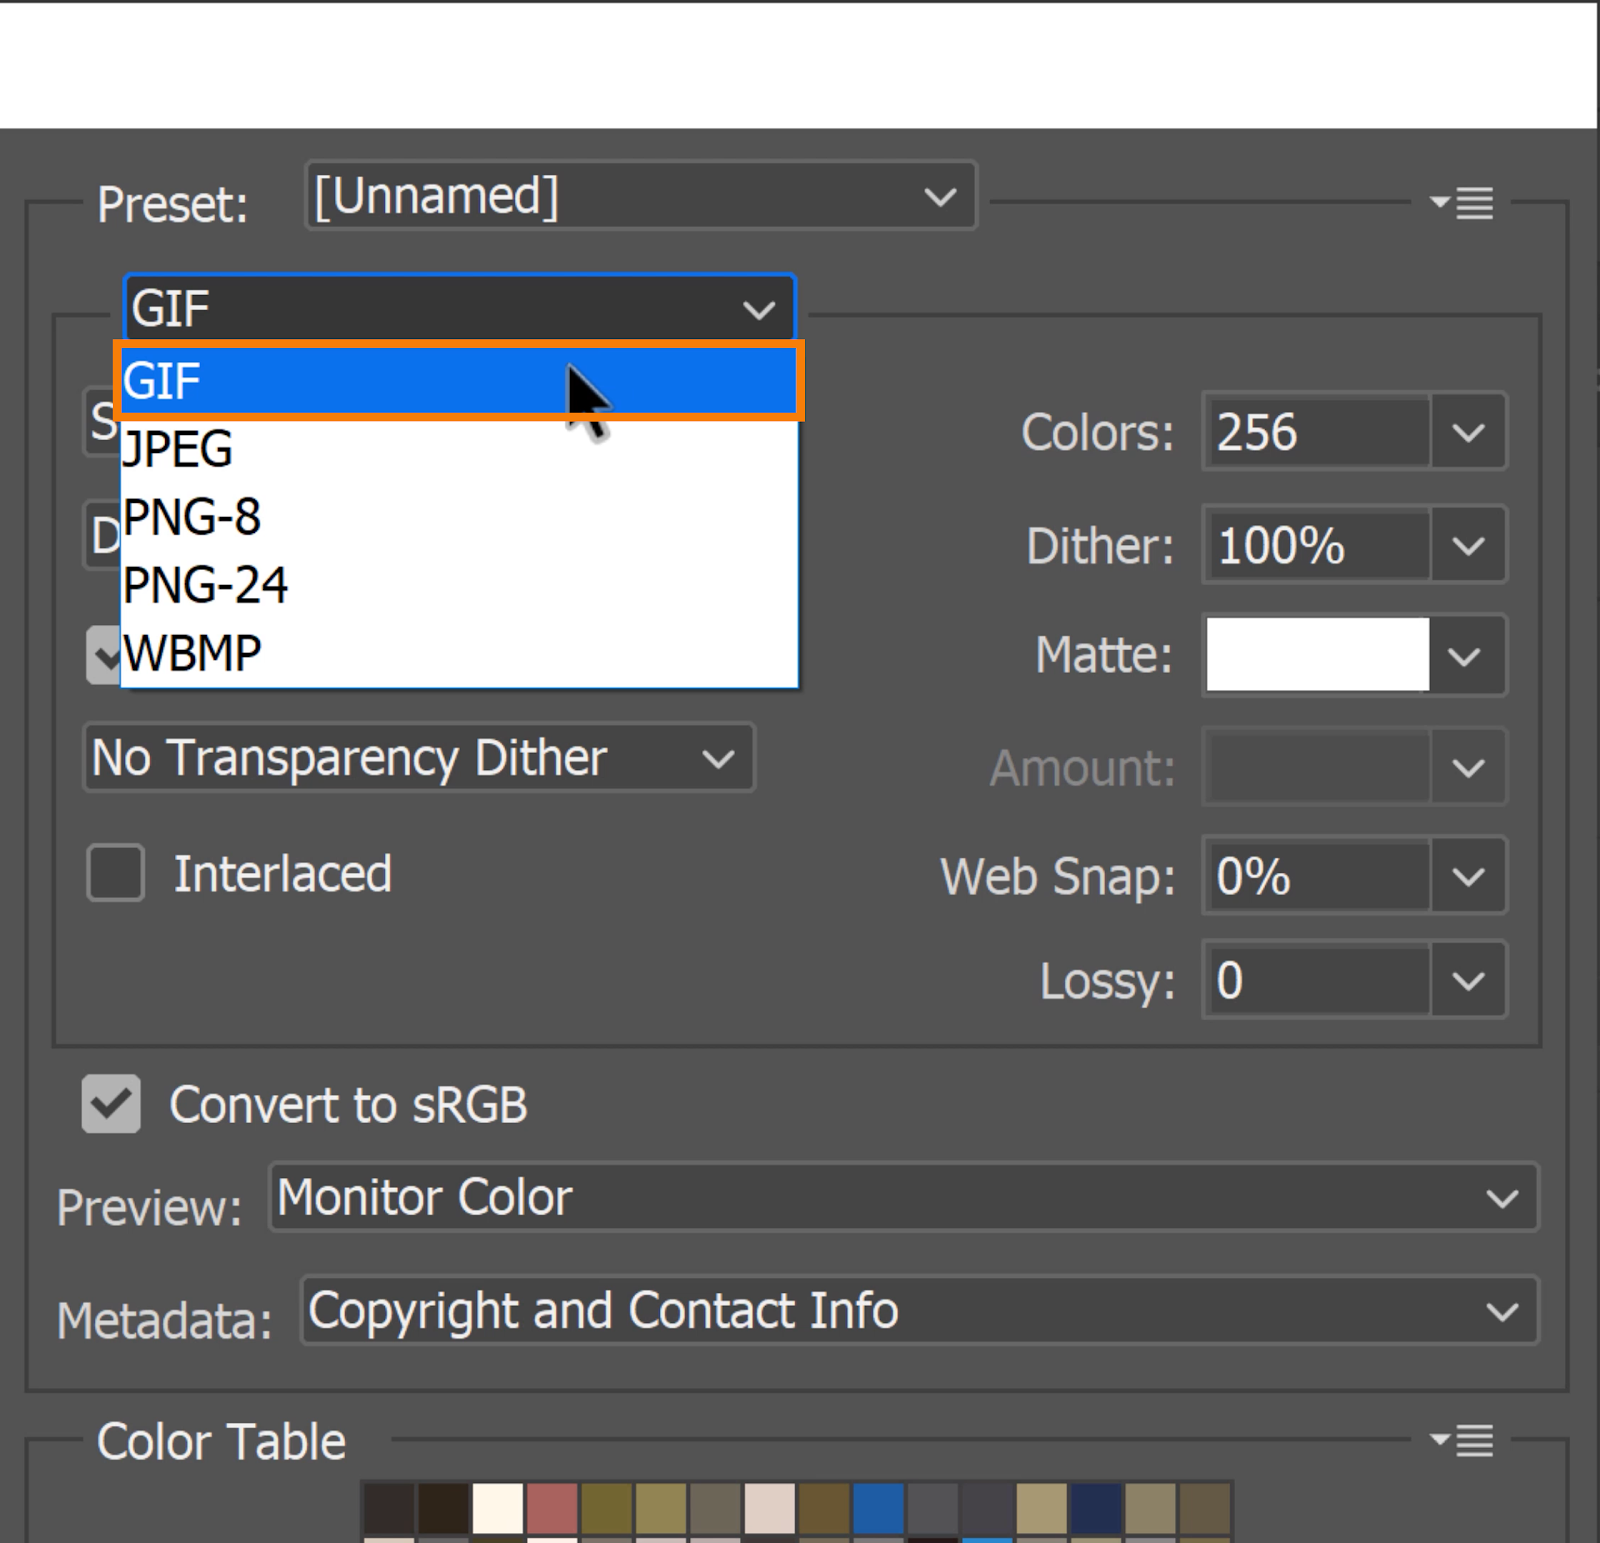 On the right-side panel, set the File format to GIF, and the default setting should be appropriate.